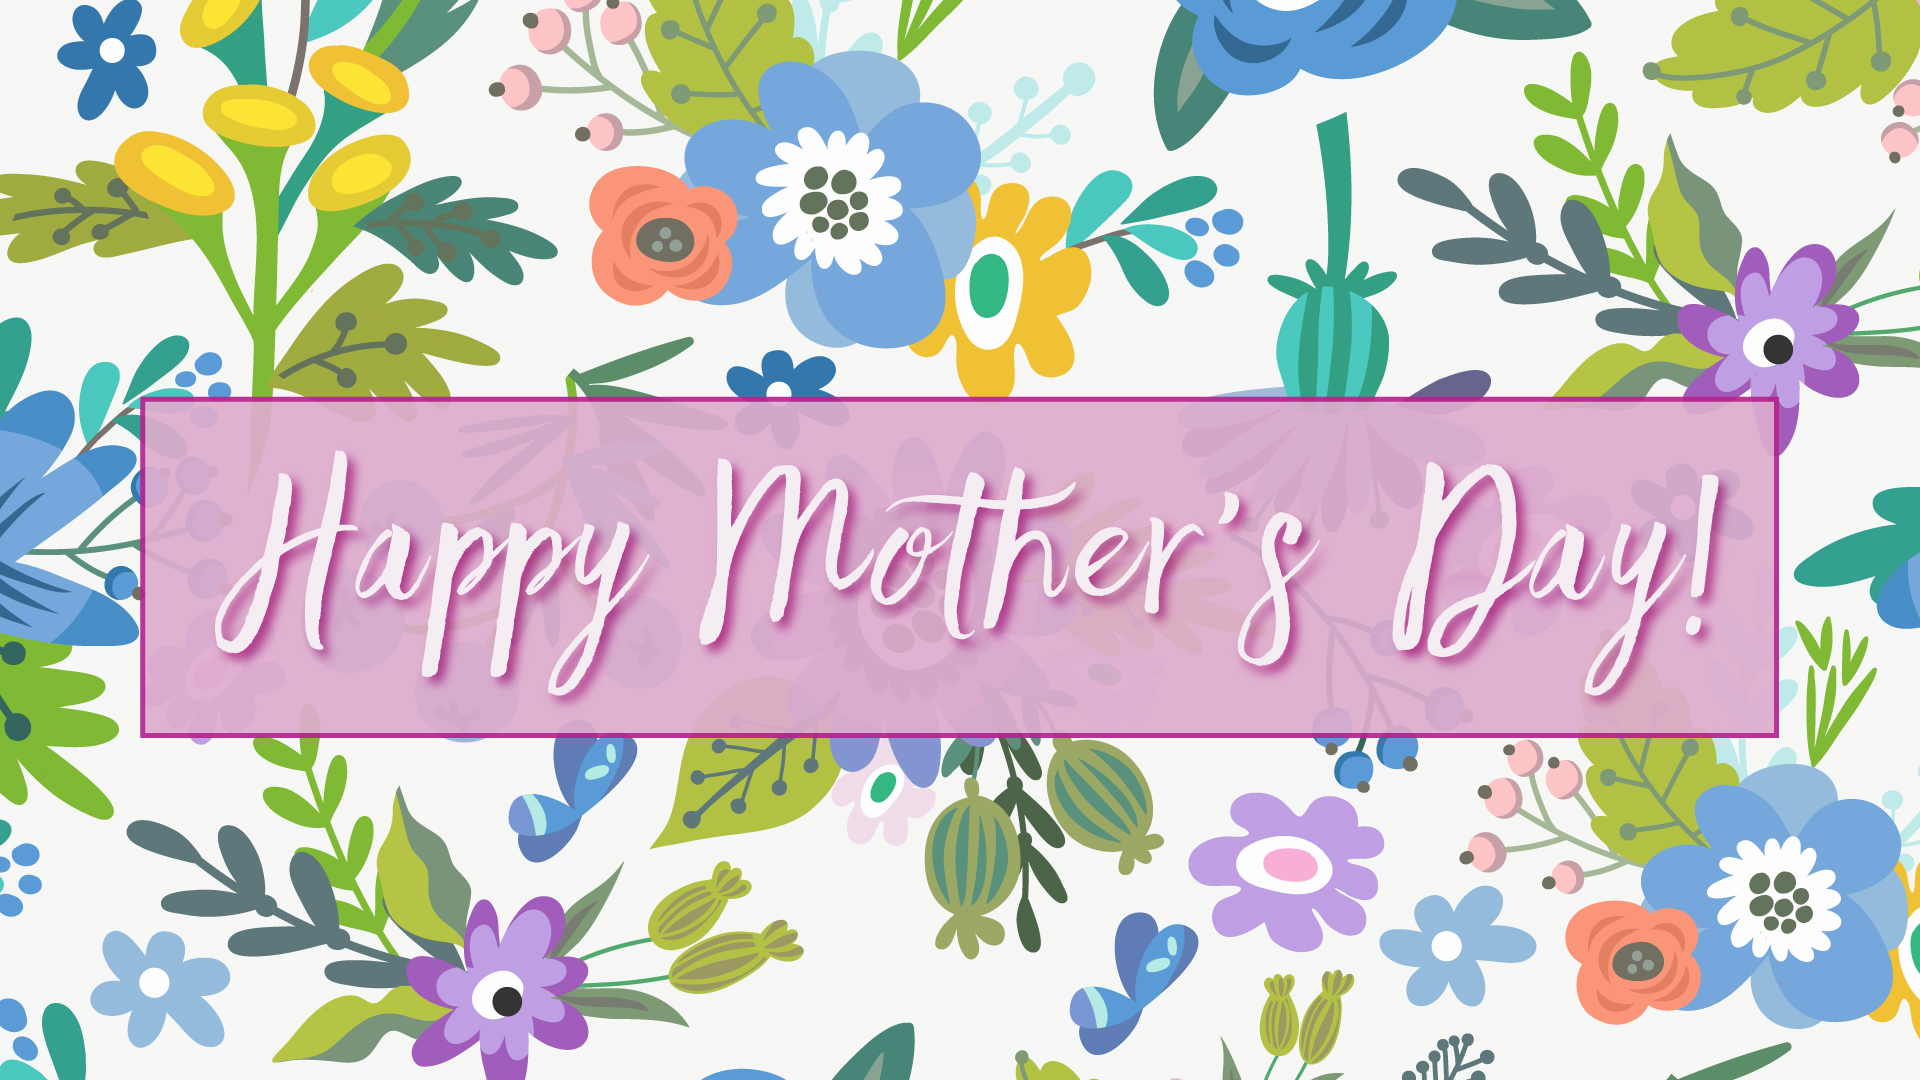 Weekly Invite – 14 May, Mother's Day